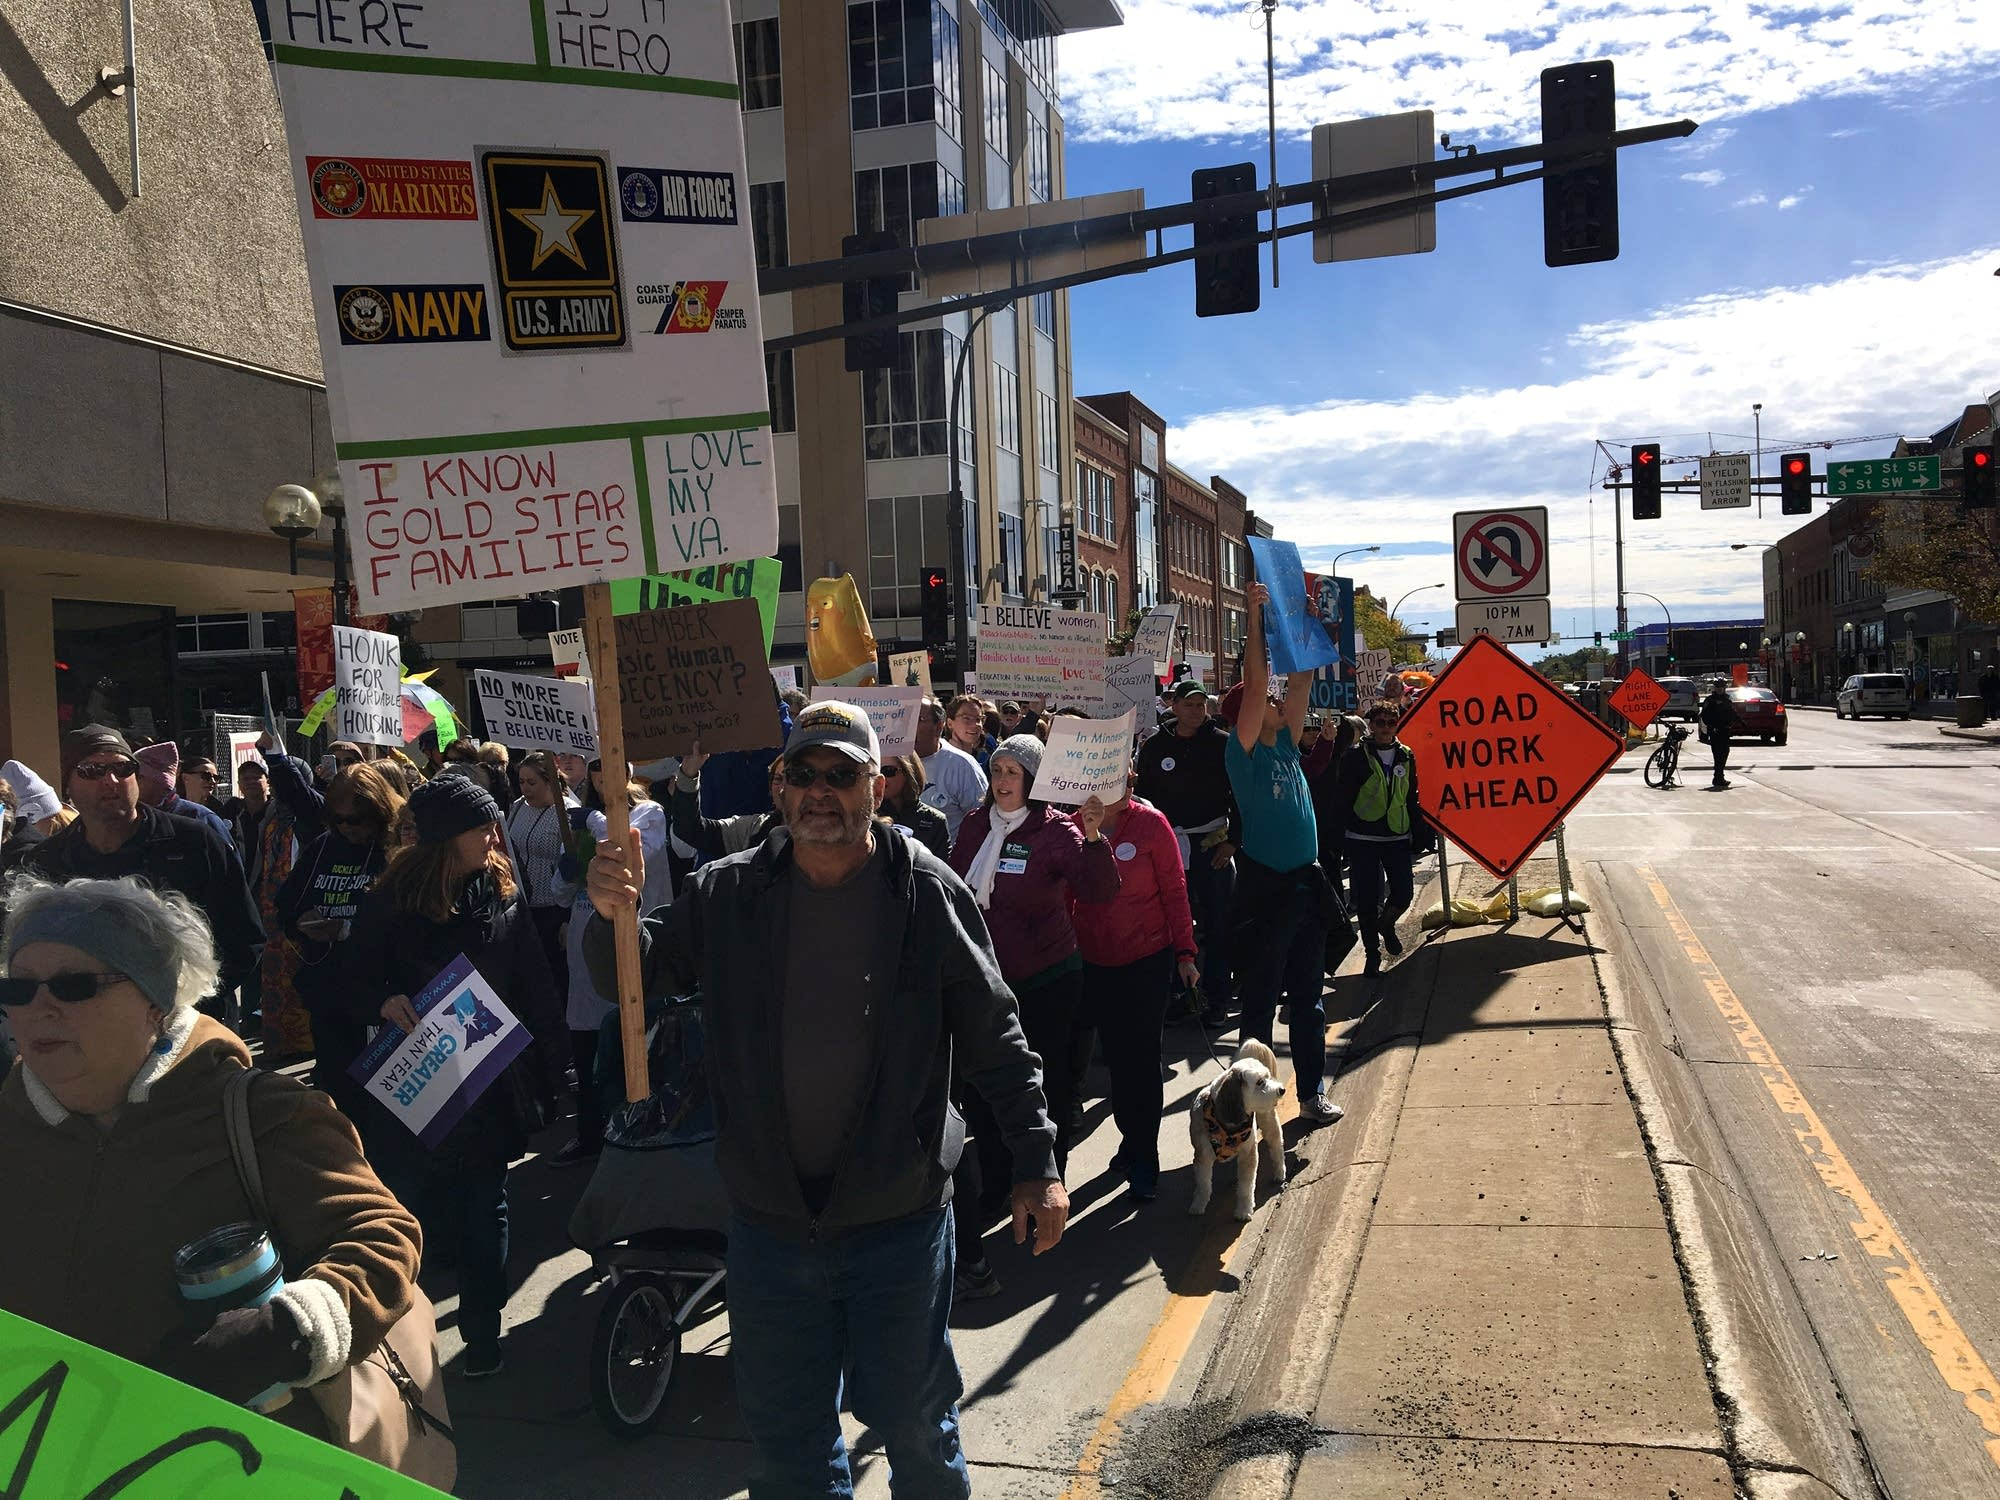 A long line of protesters marches through downtown Rochester